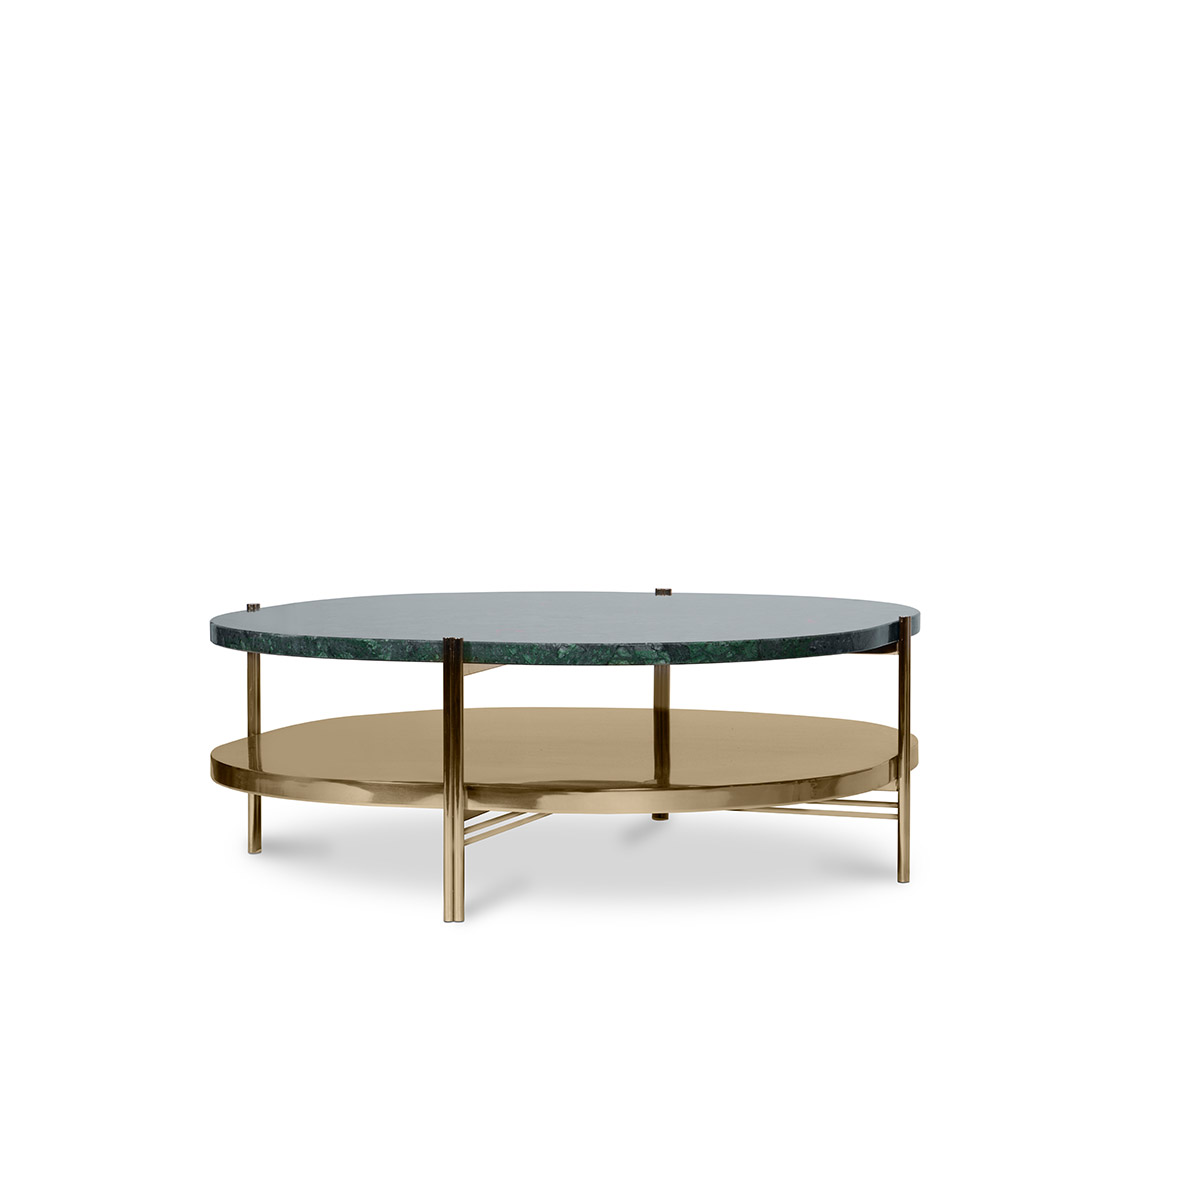 Mid Centery Center Tables By Essential Home mid century Mid Centery Center Tables By Essential Home craig center table essential home 01